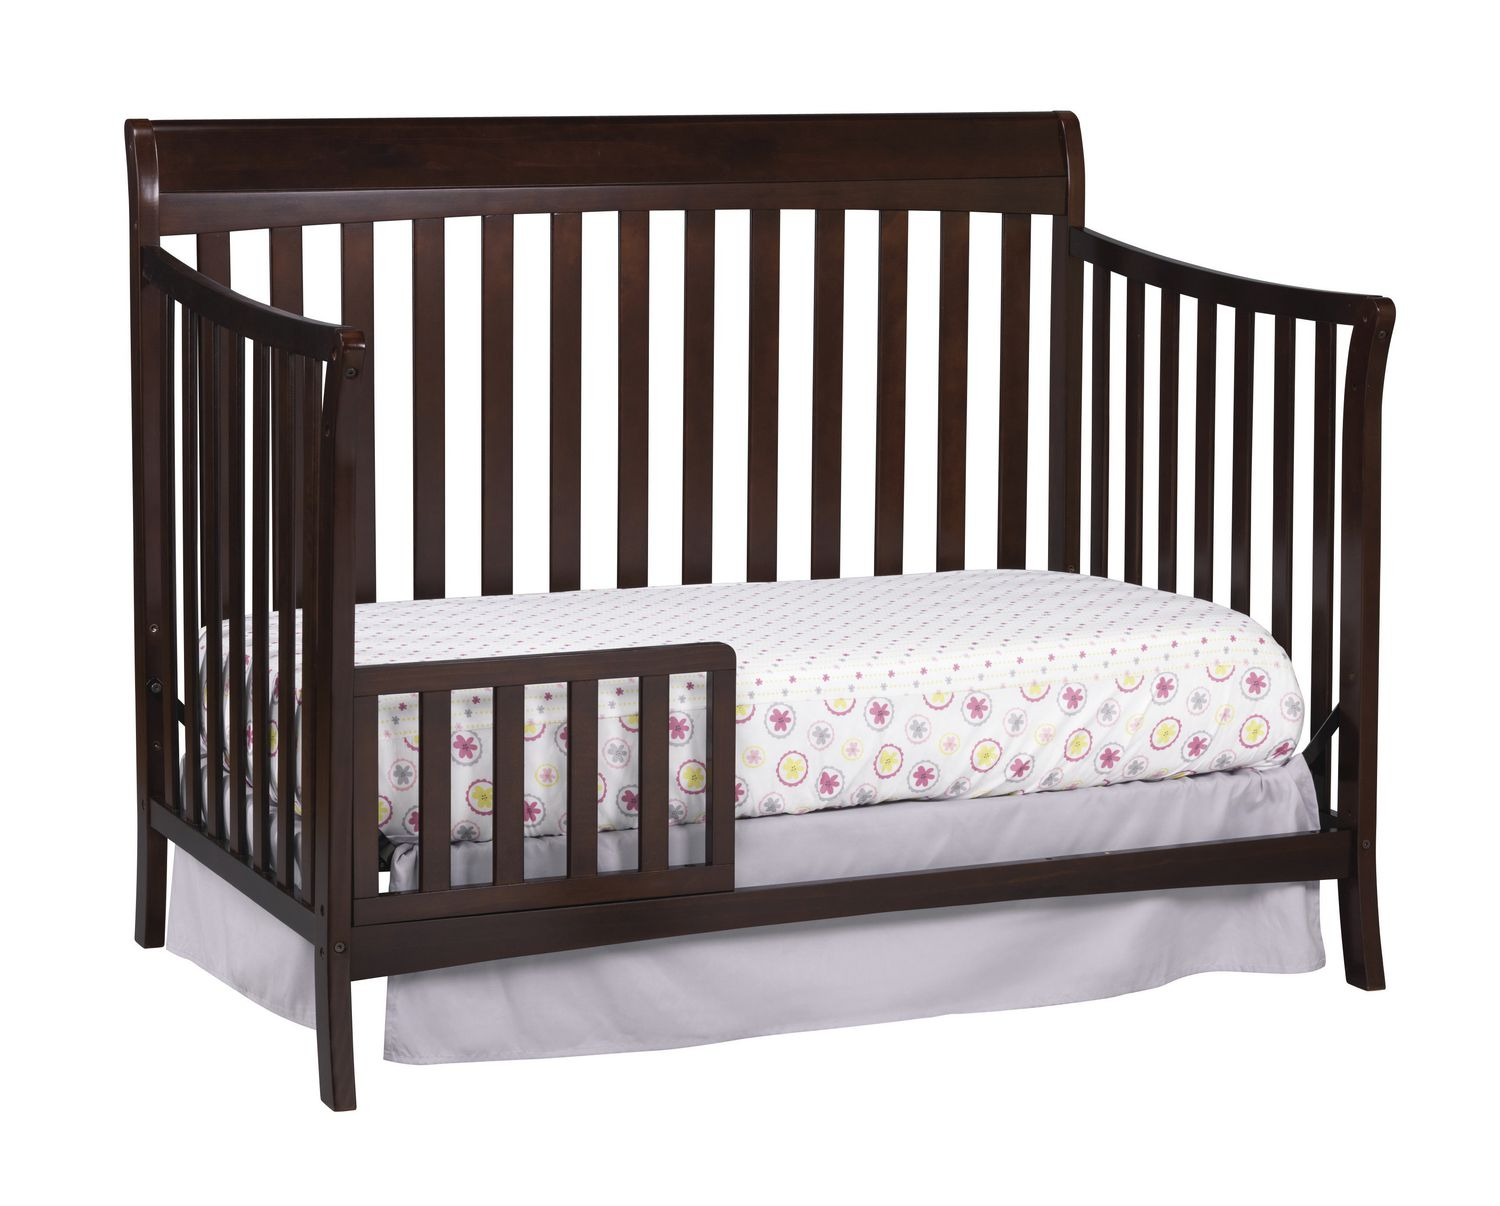 stork craft avalon 4-in-1 convertible crib | walmart.ca